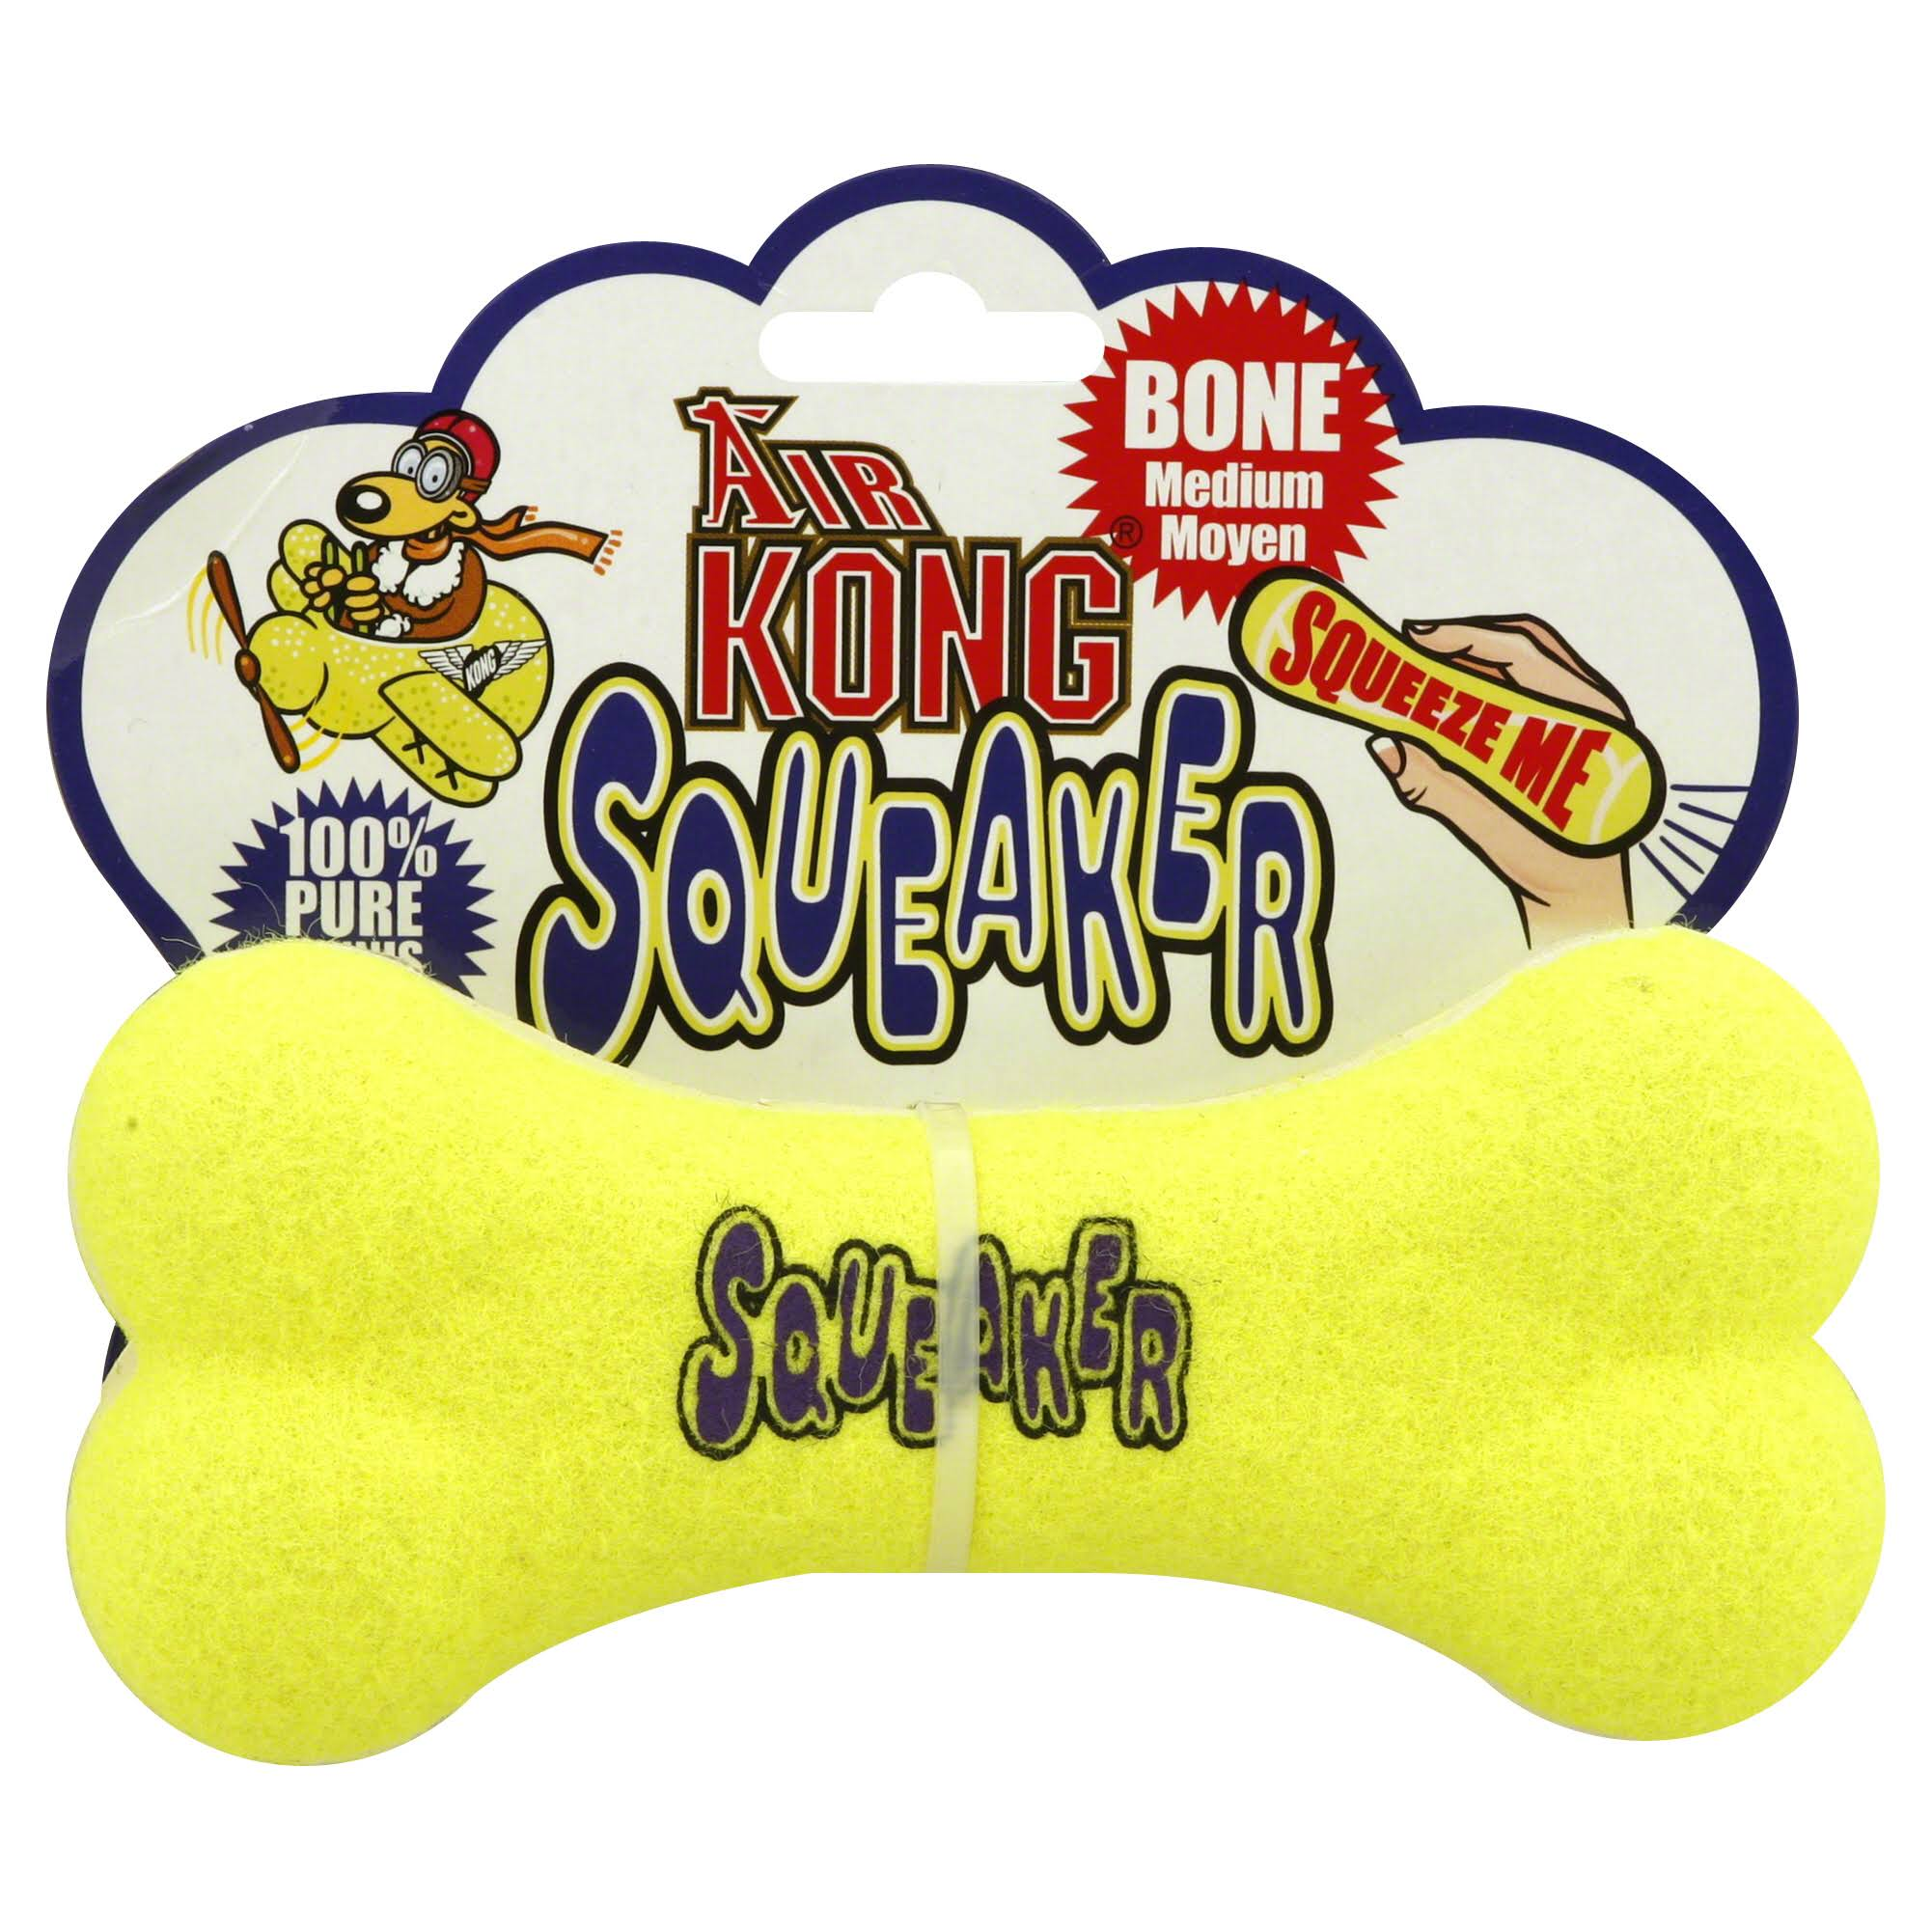 Kong Air Dog Squeaker Bone Dog Toy - Yellow, Medium